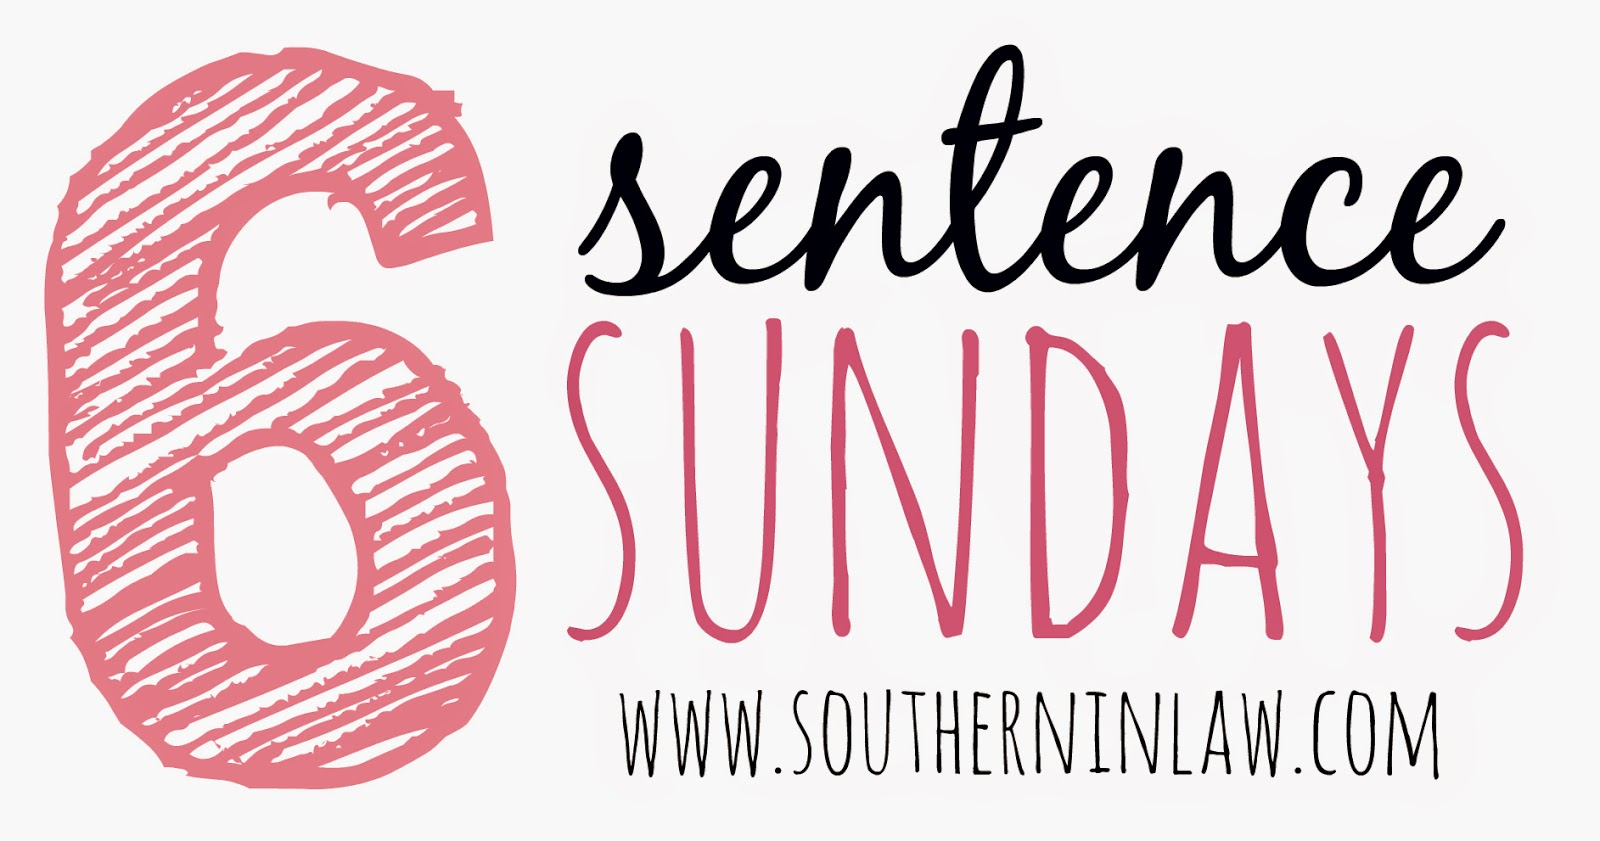 6 Sentence Sunday at Southern In-Law